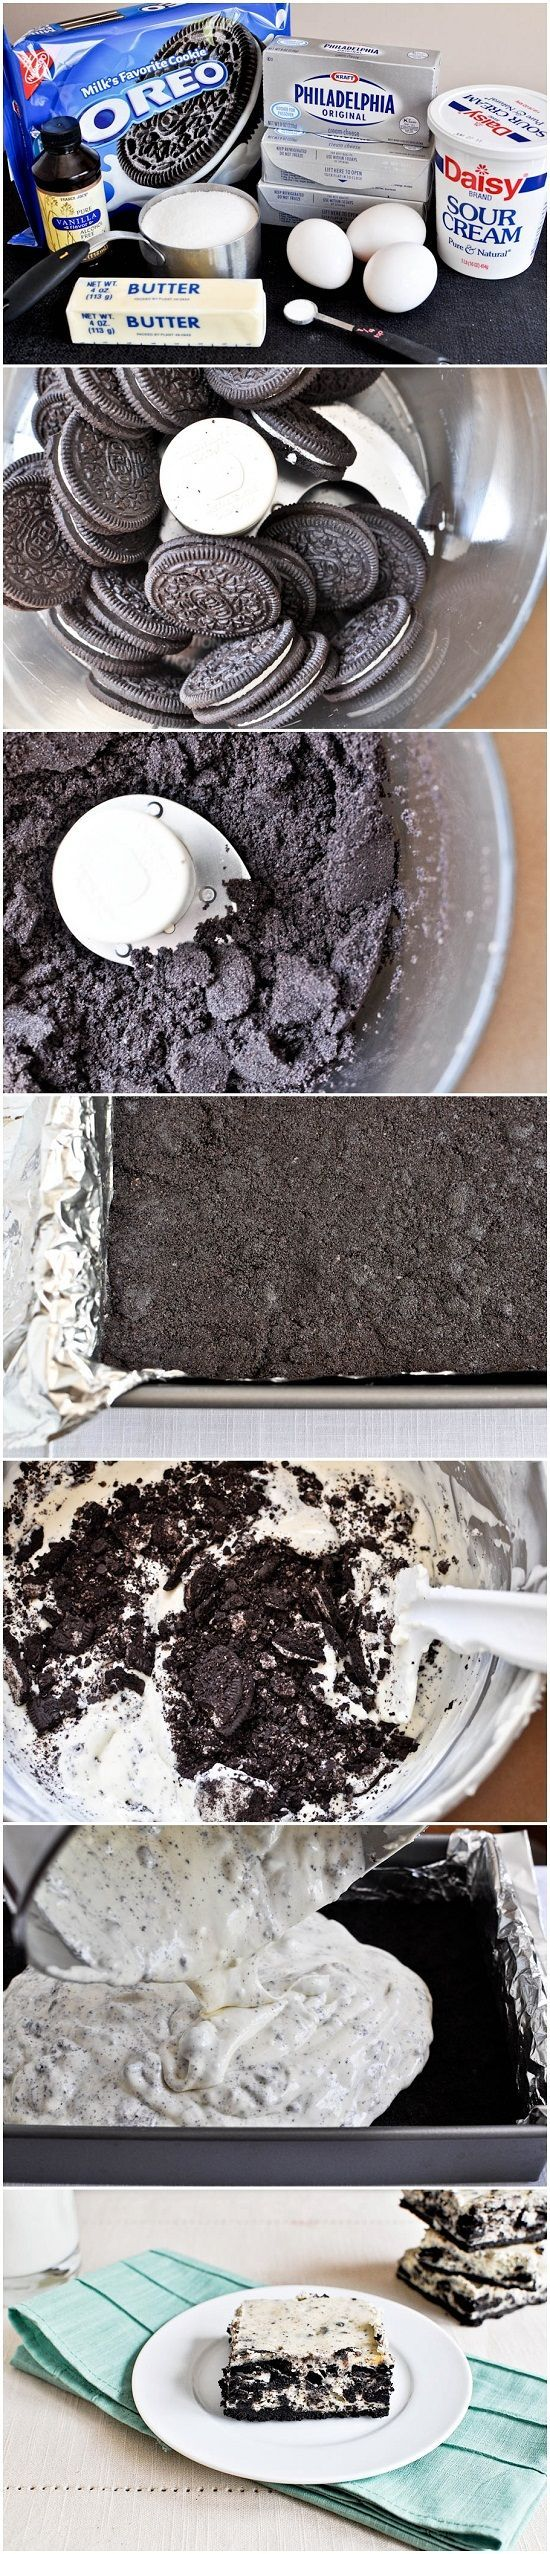 Cookies and Cream Cheesecake Bars | CookJino